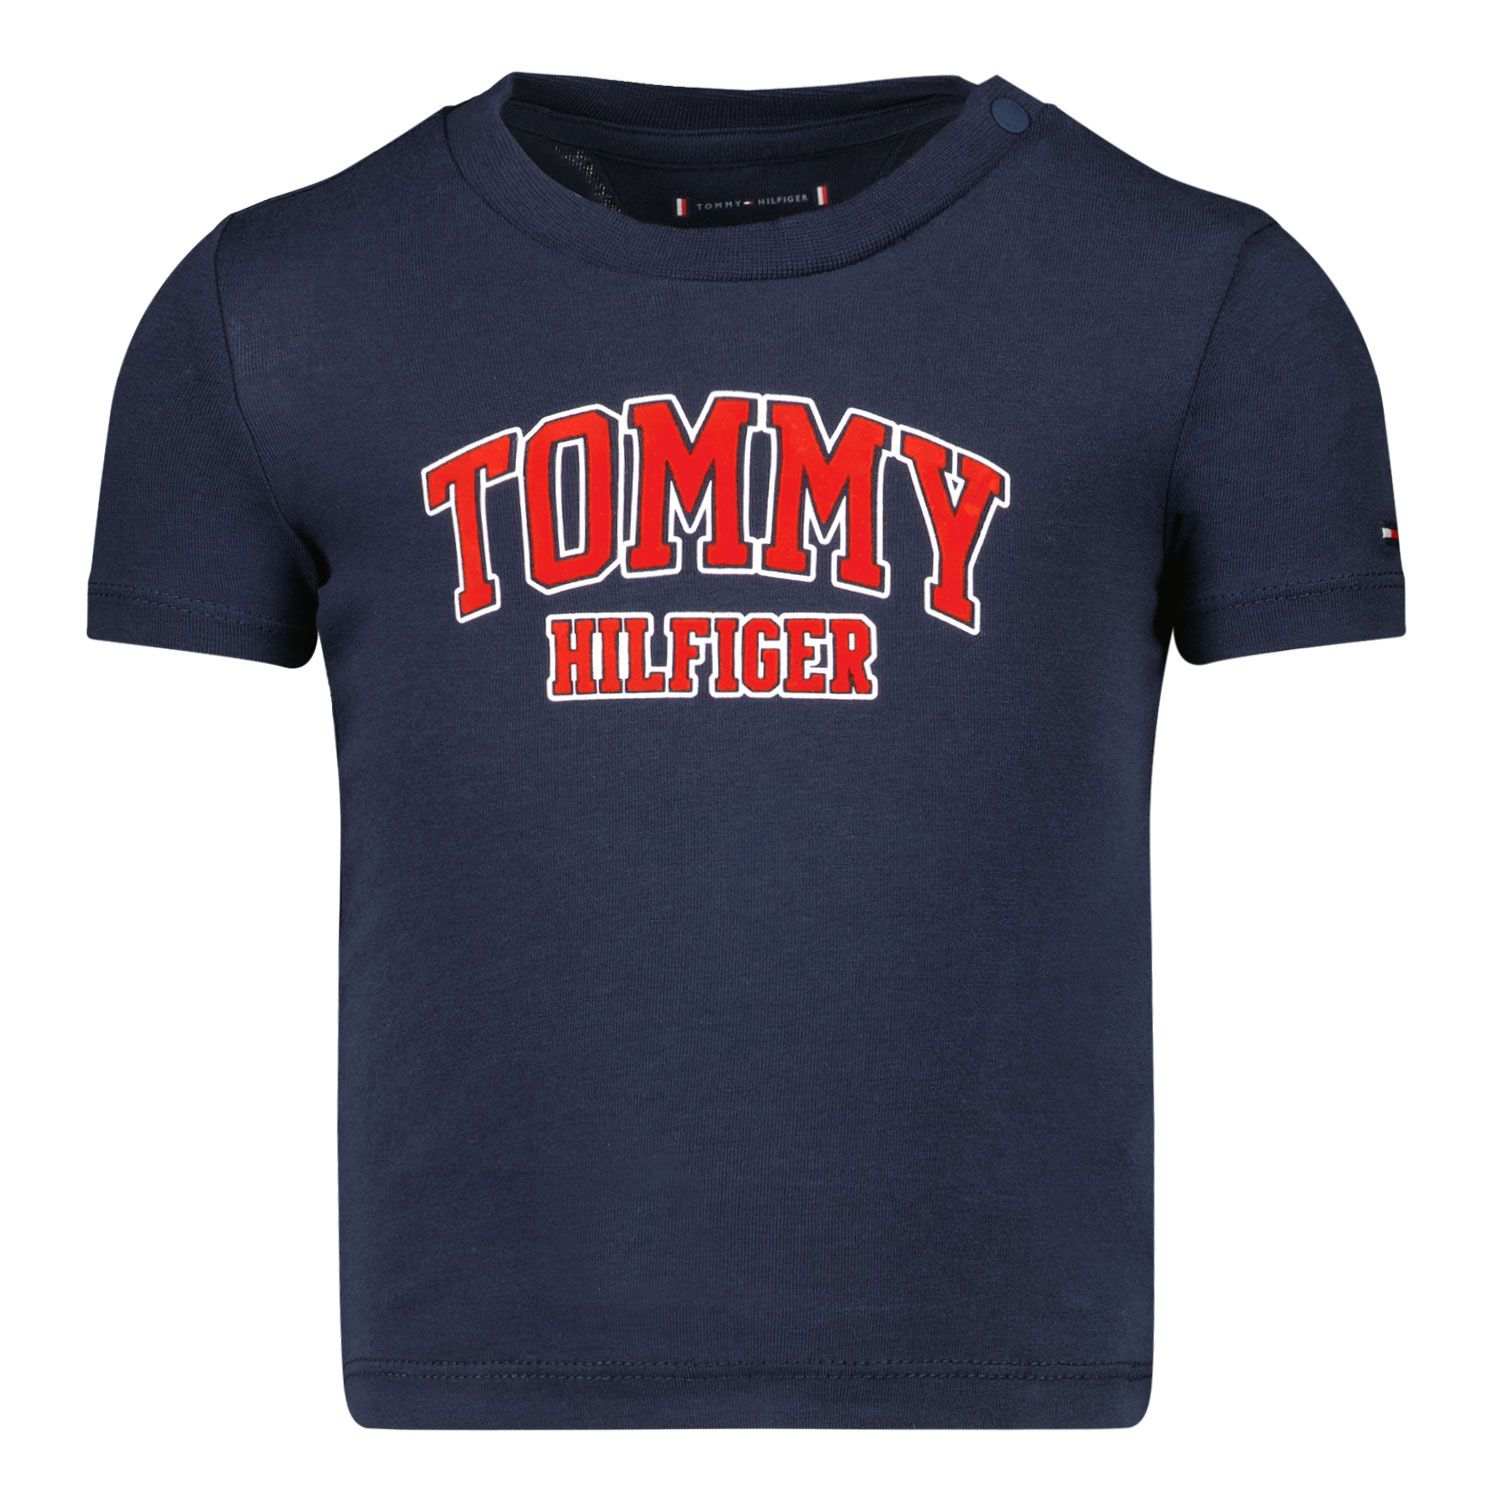 Picture of Tommy Hilfiger KN0KN01272 baby shirt navy